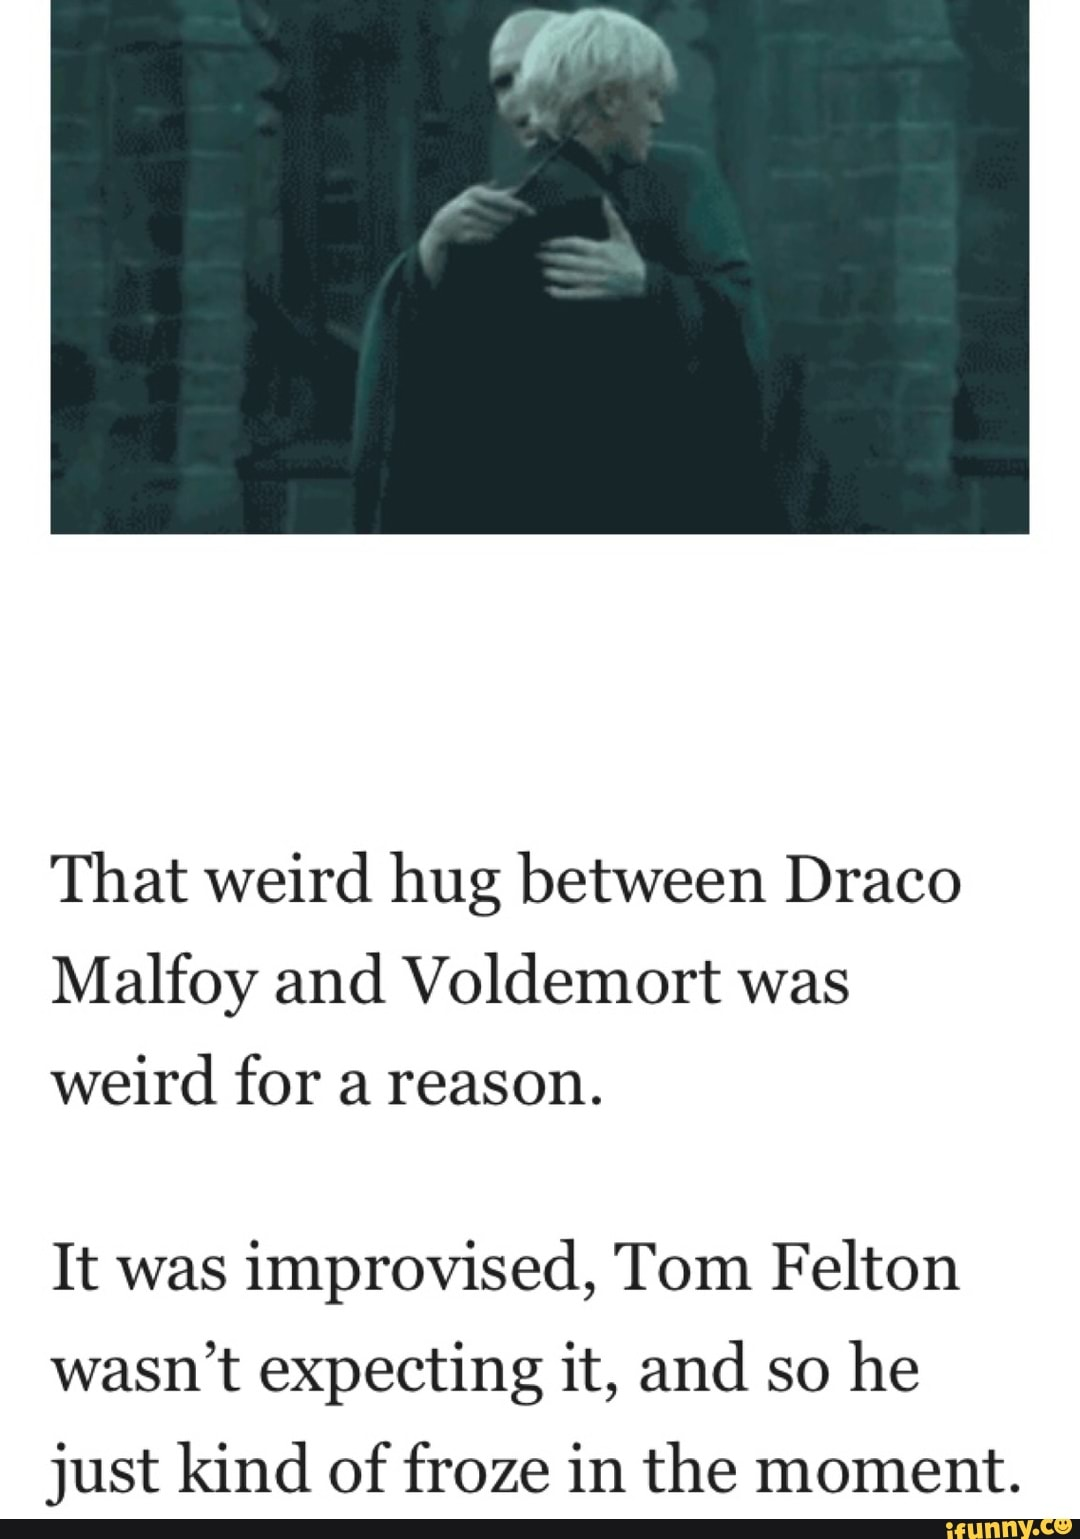 That Weird Hug Between Draco Malfoy And Voldemort Was Weird For A